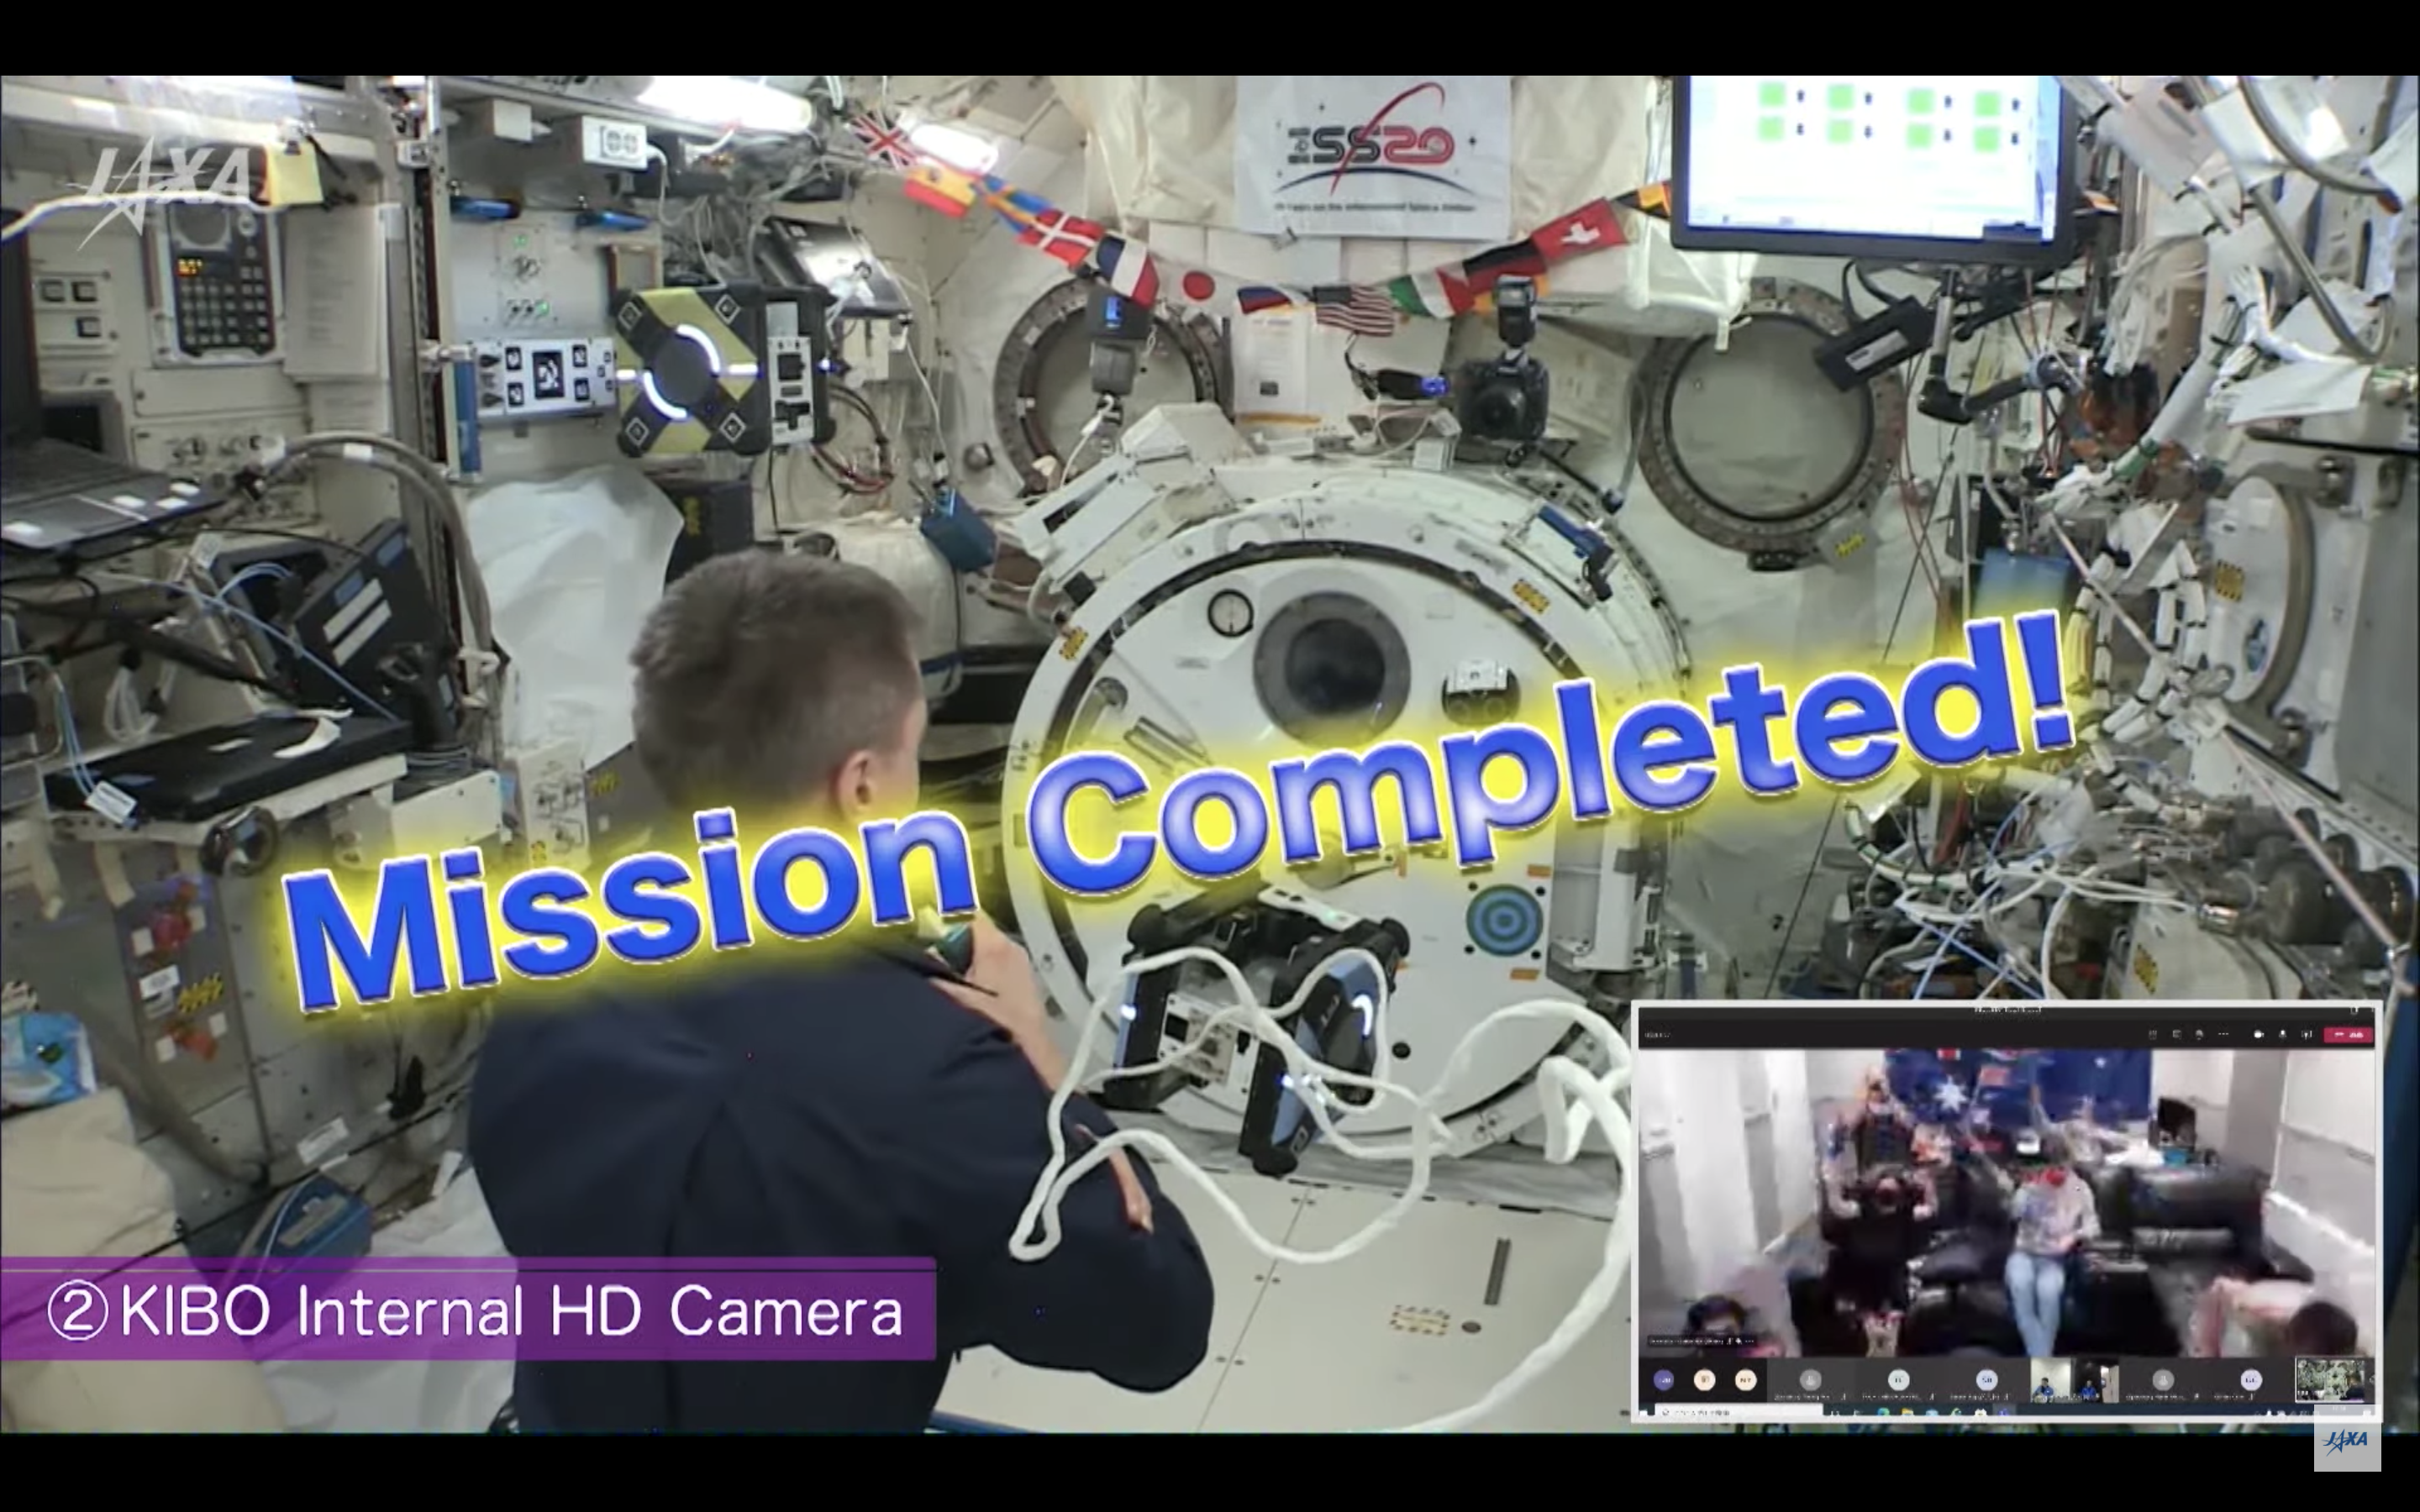 Screenshot of video linkup with Commander Cassidy and Astrobee, with words Mission Completed